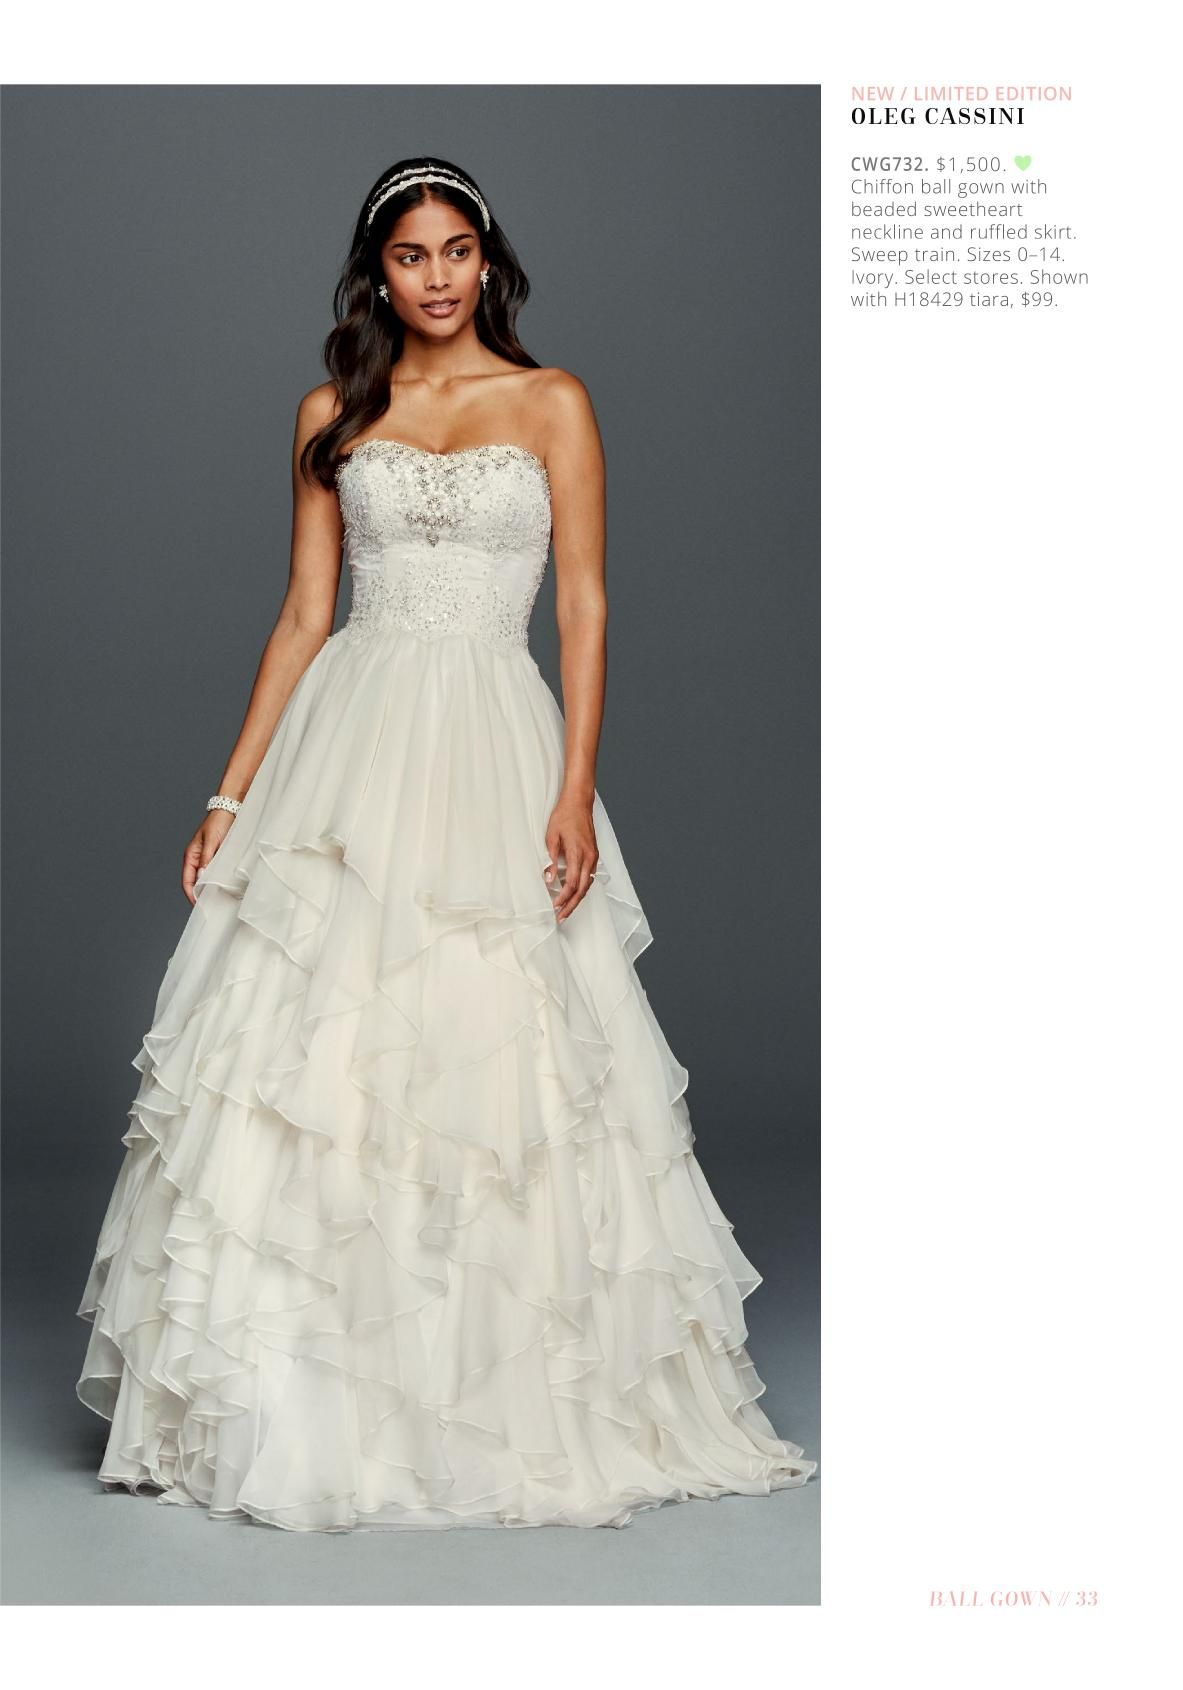 Davidus bridal online catalog in my dreams pinterest